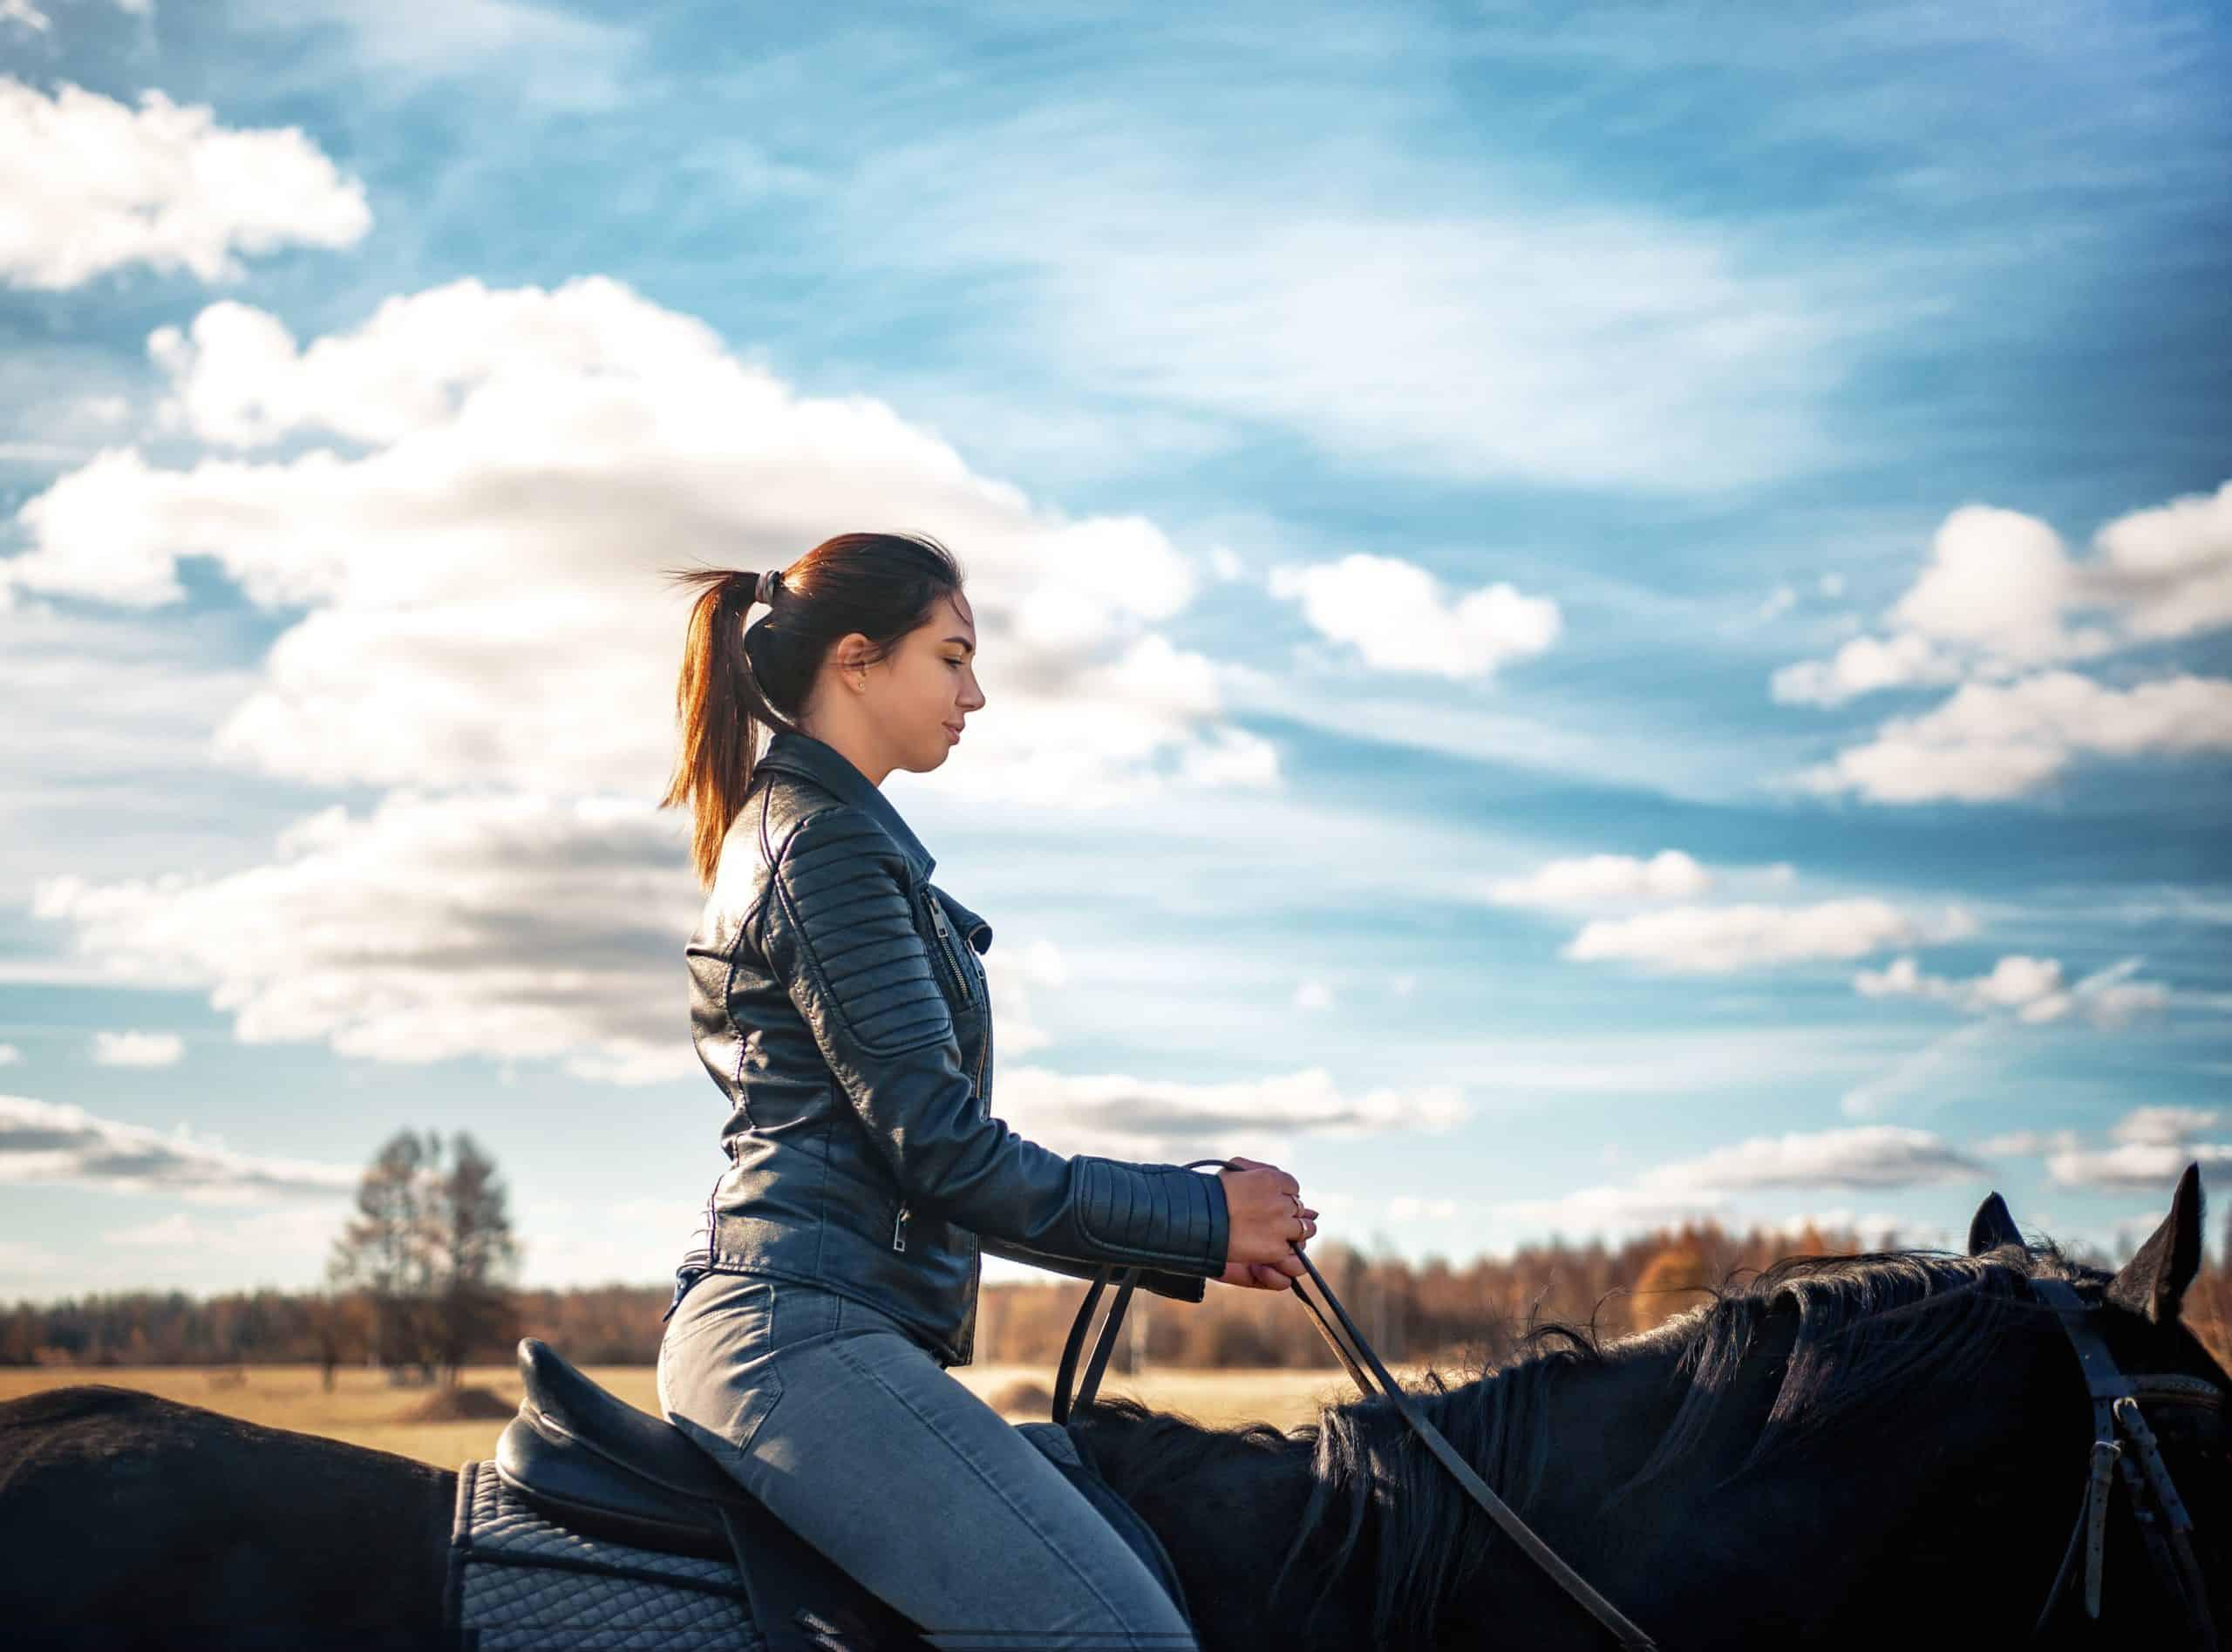 Horseback riding. Girl sitting on a black horse